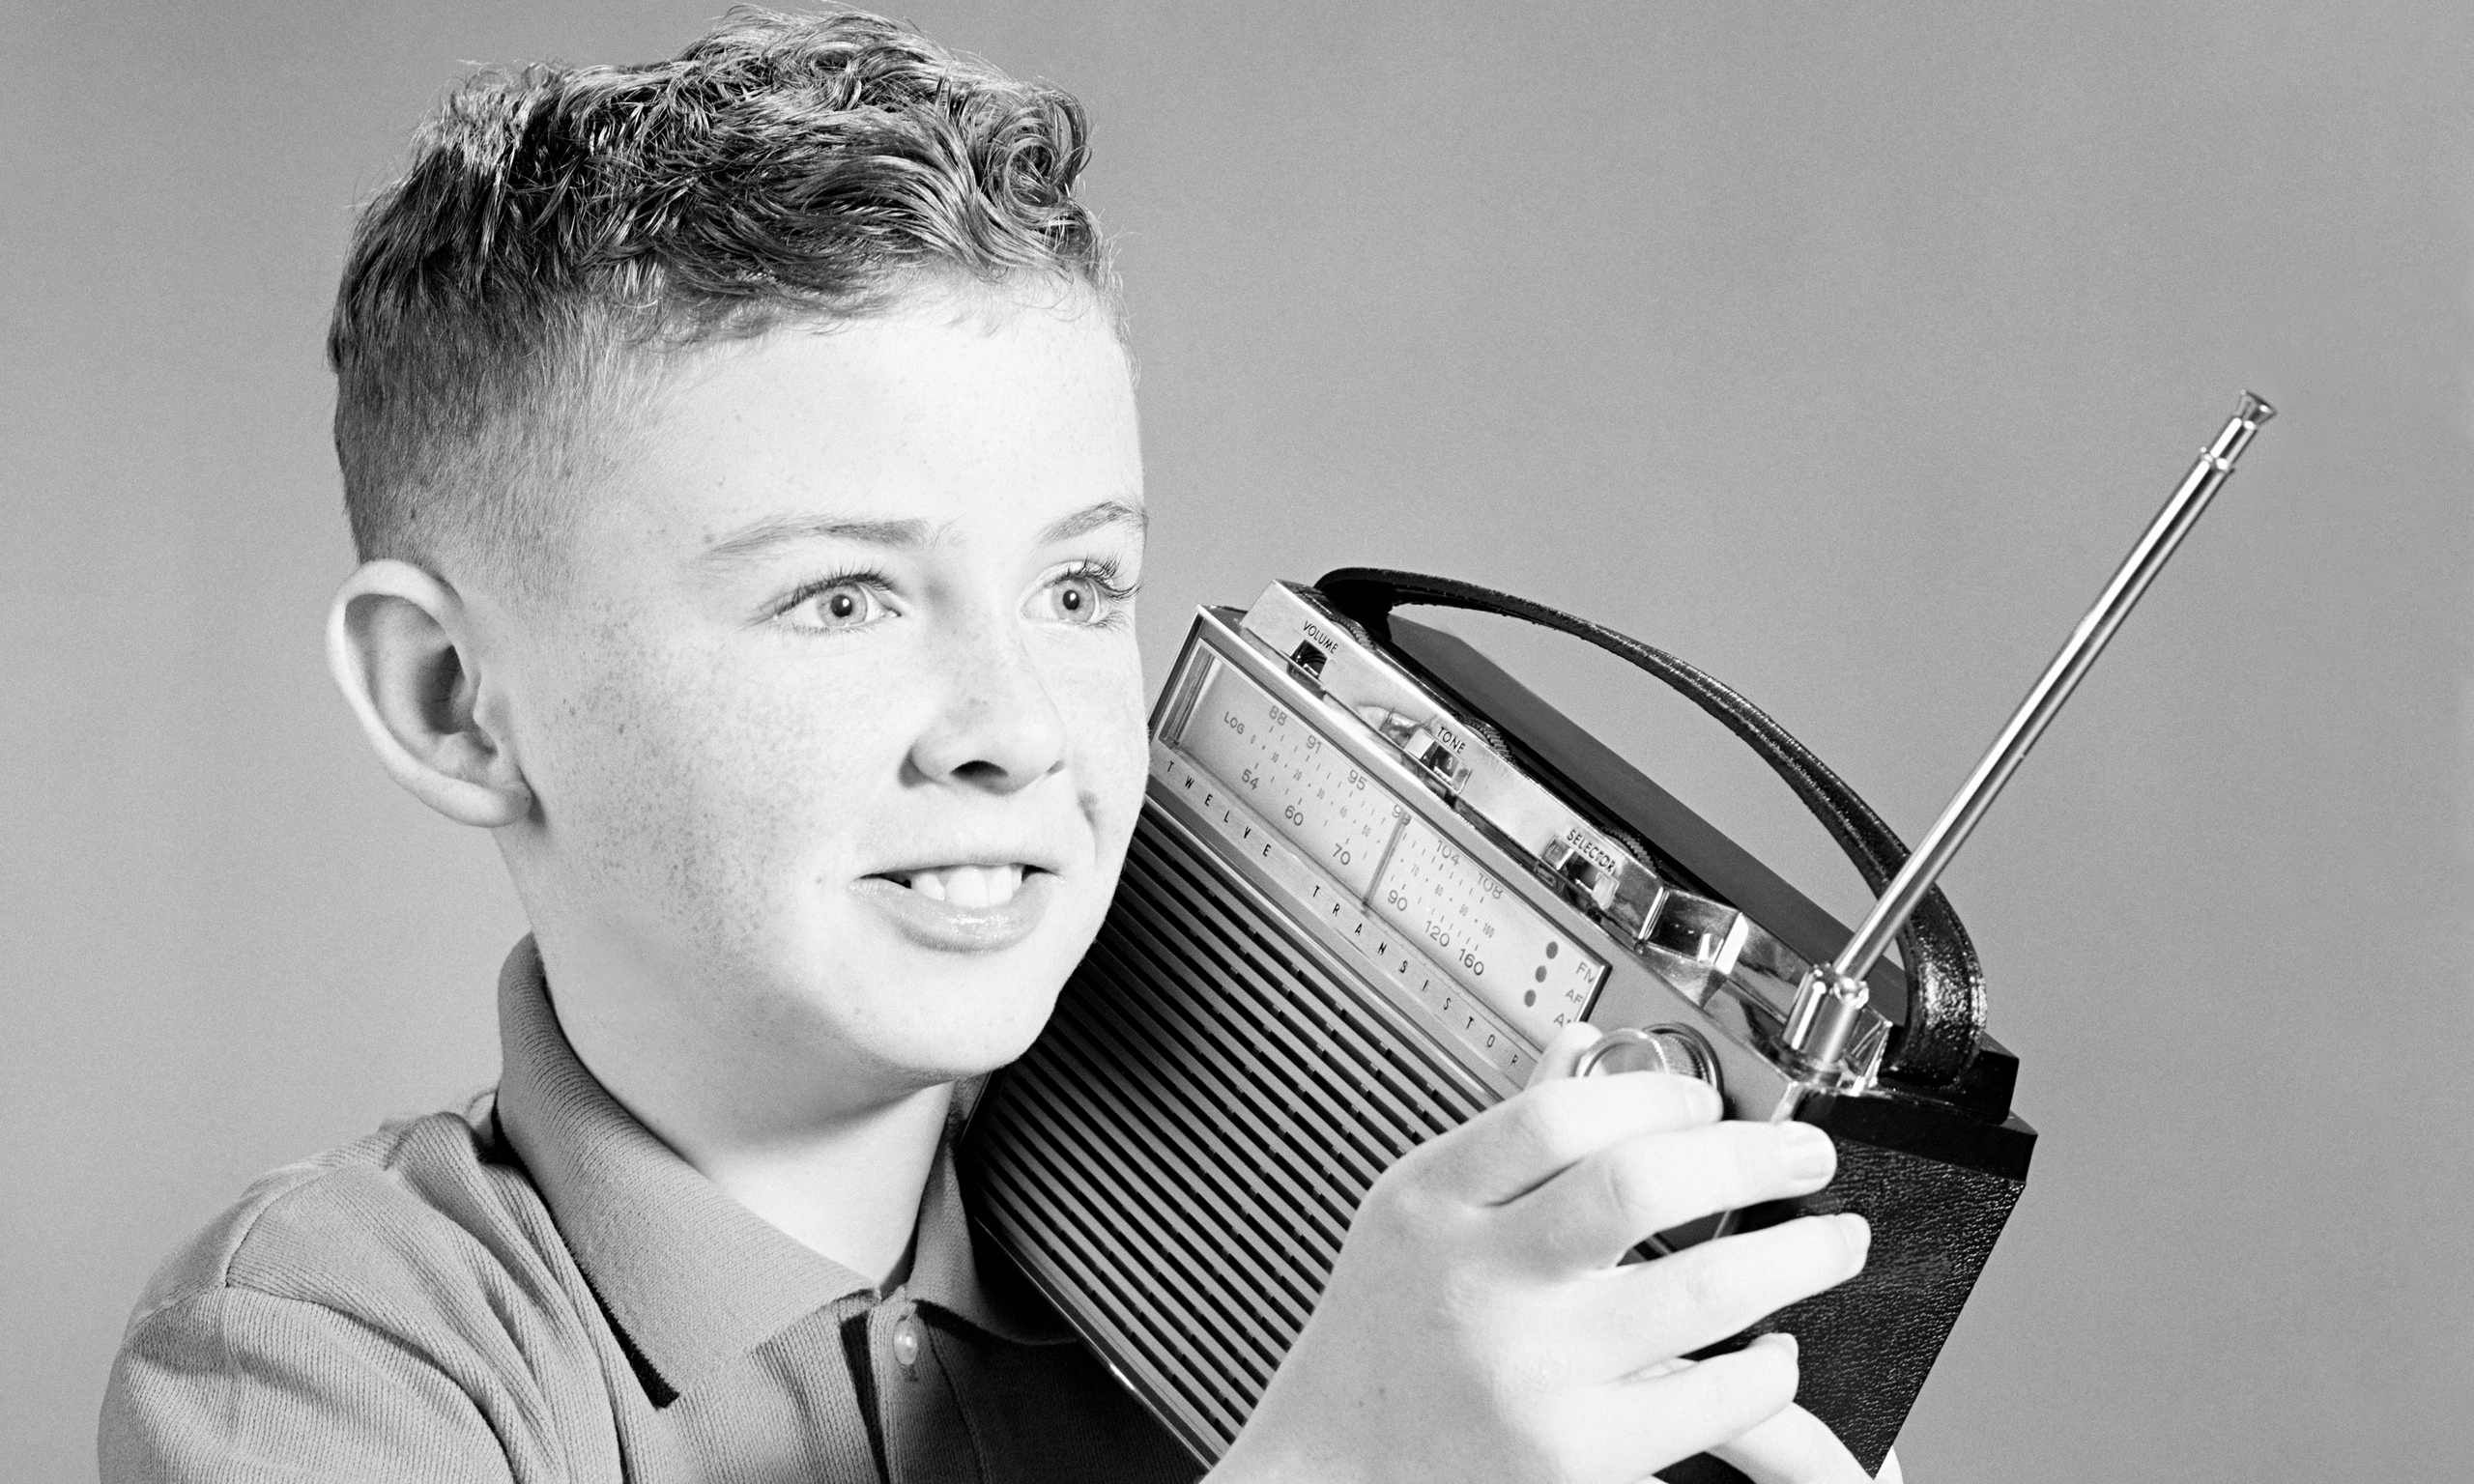 Boy listening to portable radio